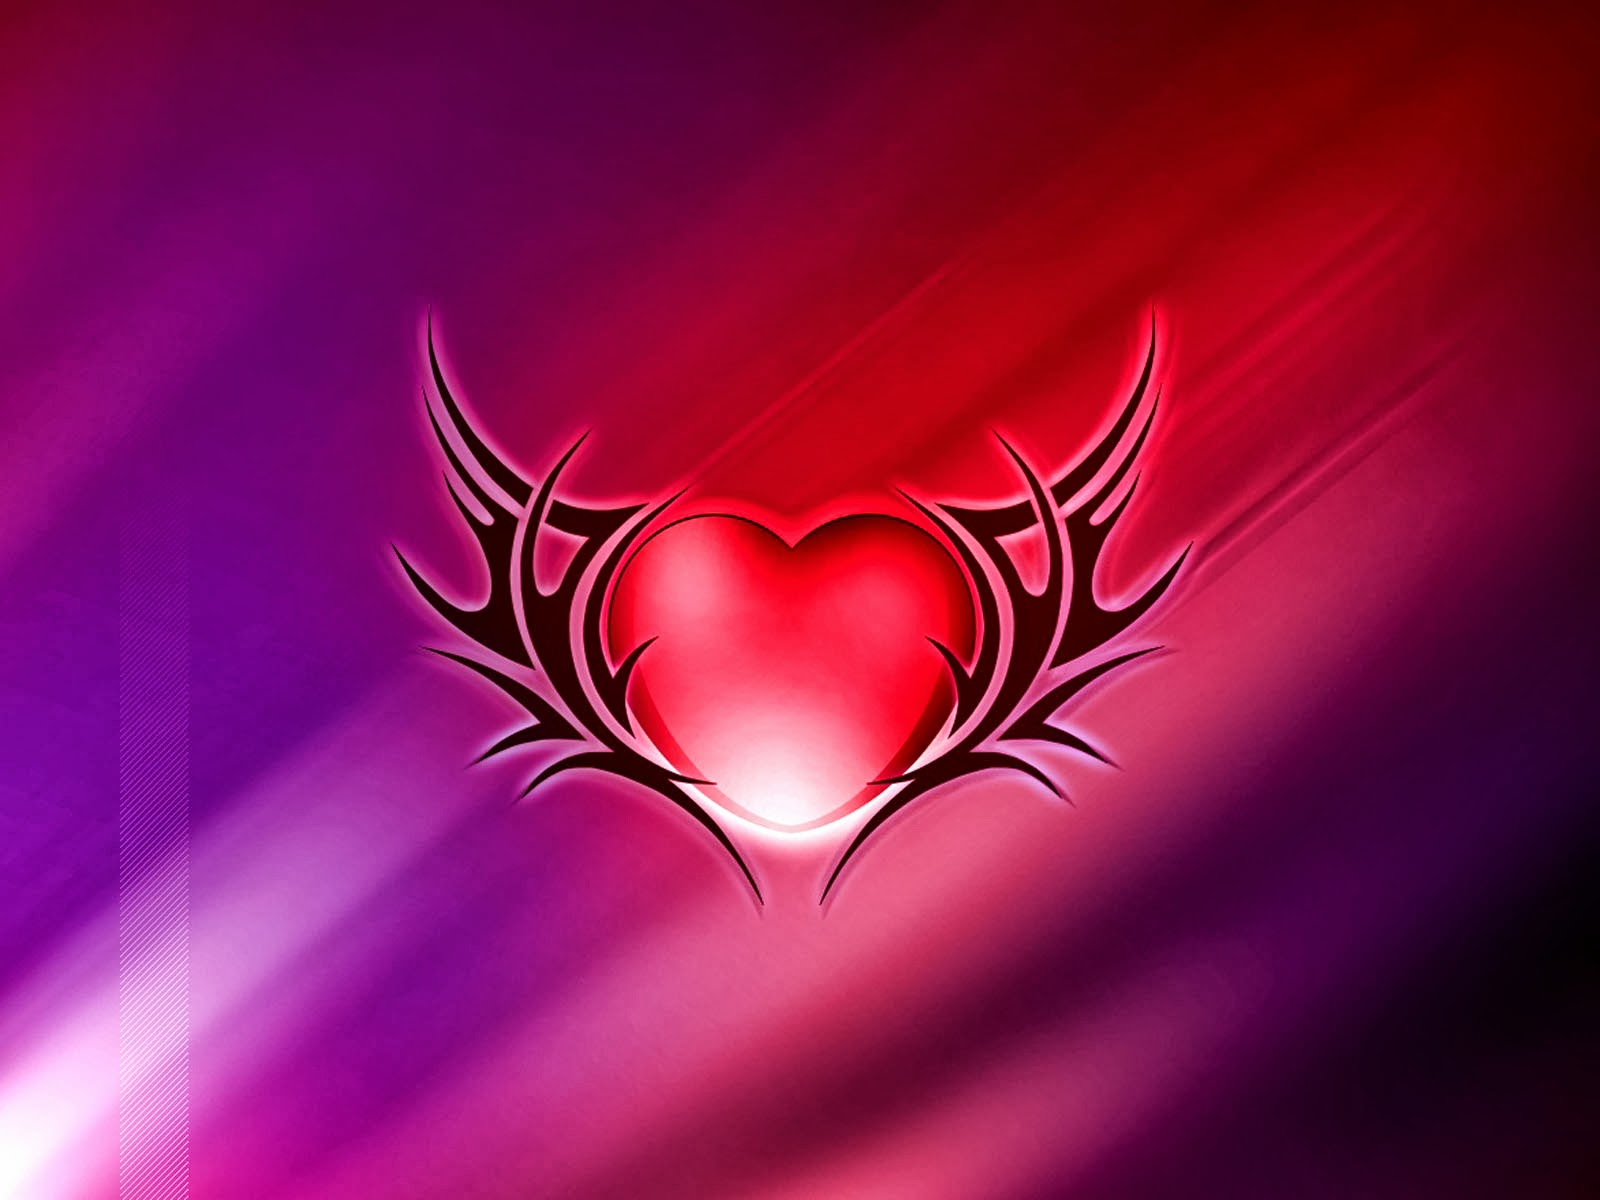 Love Wallpaper For Desktop Best : wallpapers: Love Desktop Wallpapers